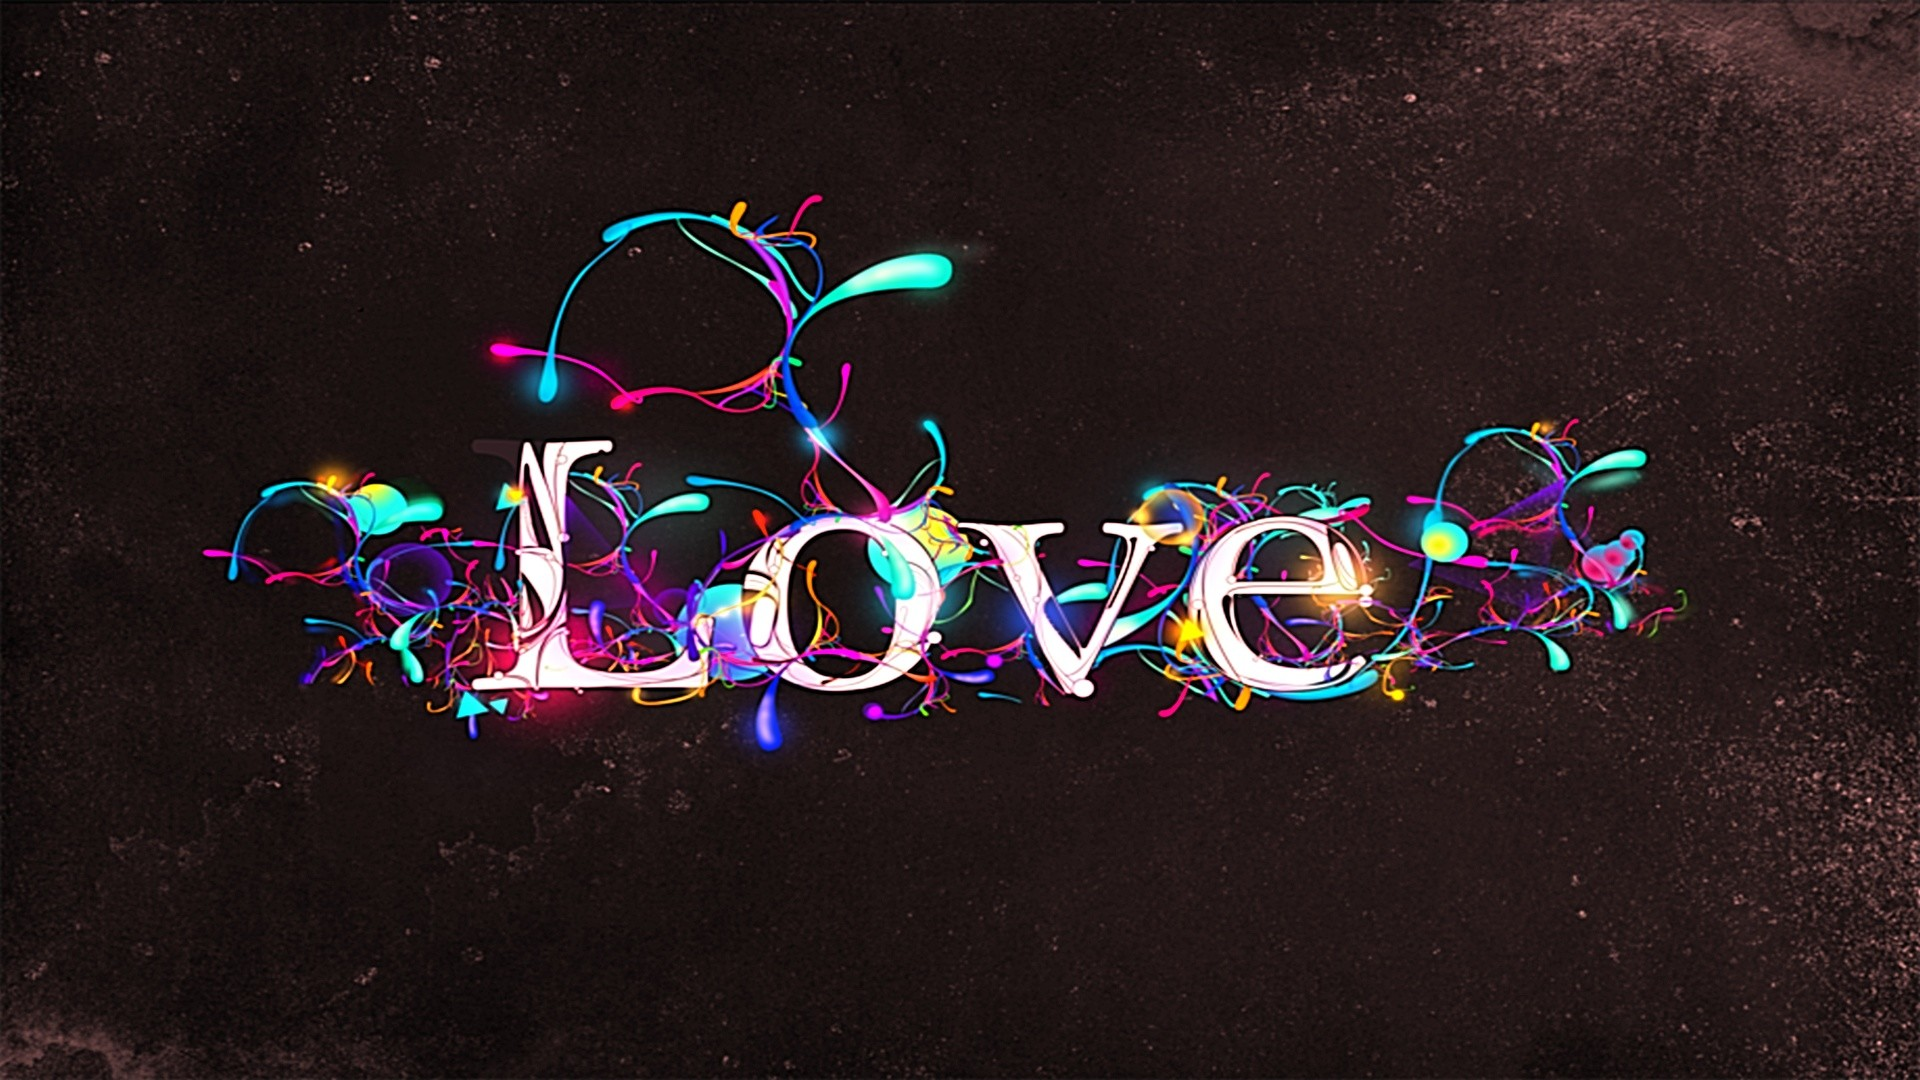 Romantic Love Messages & Wallpapers 3